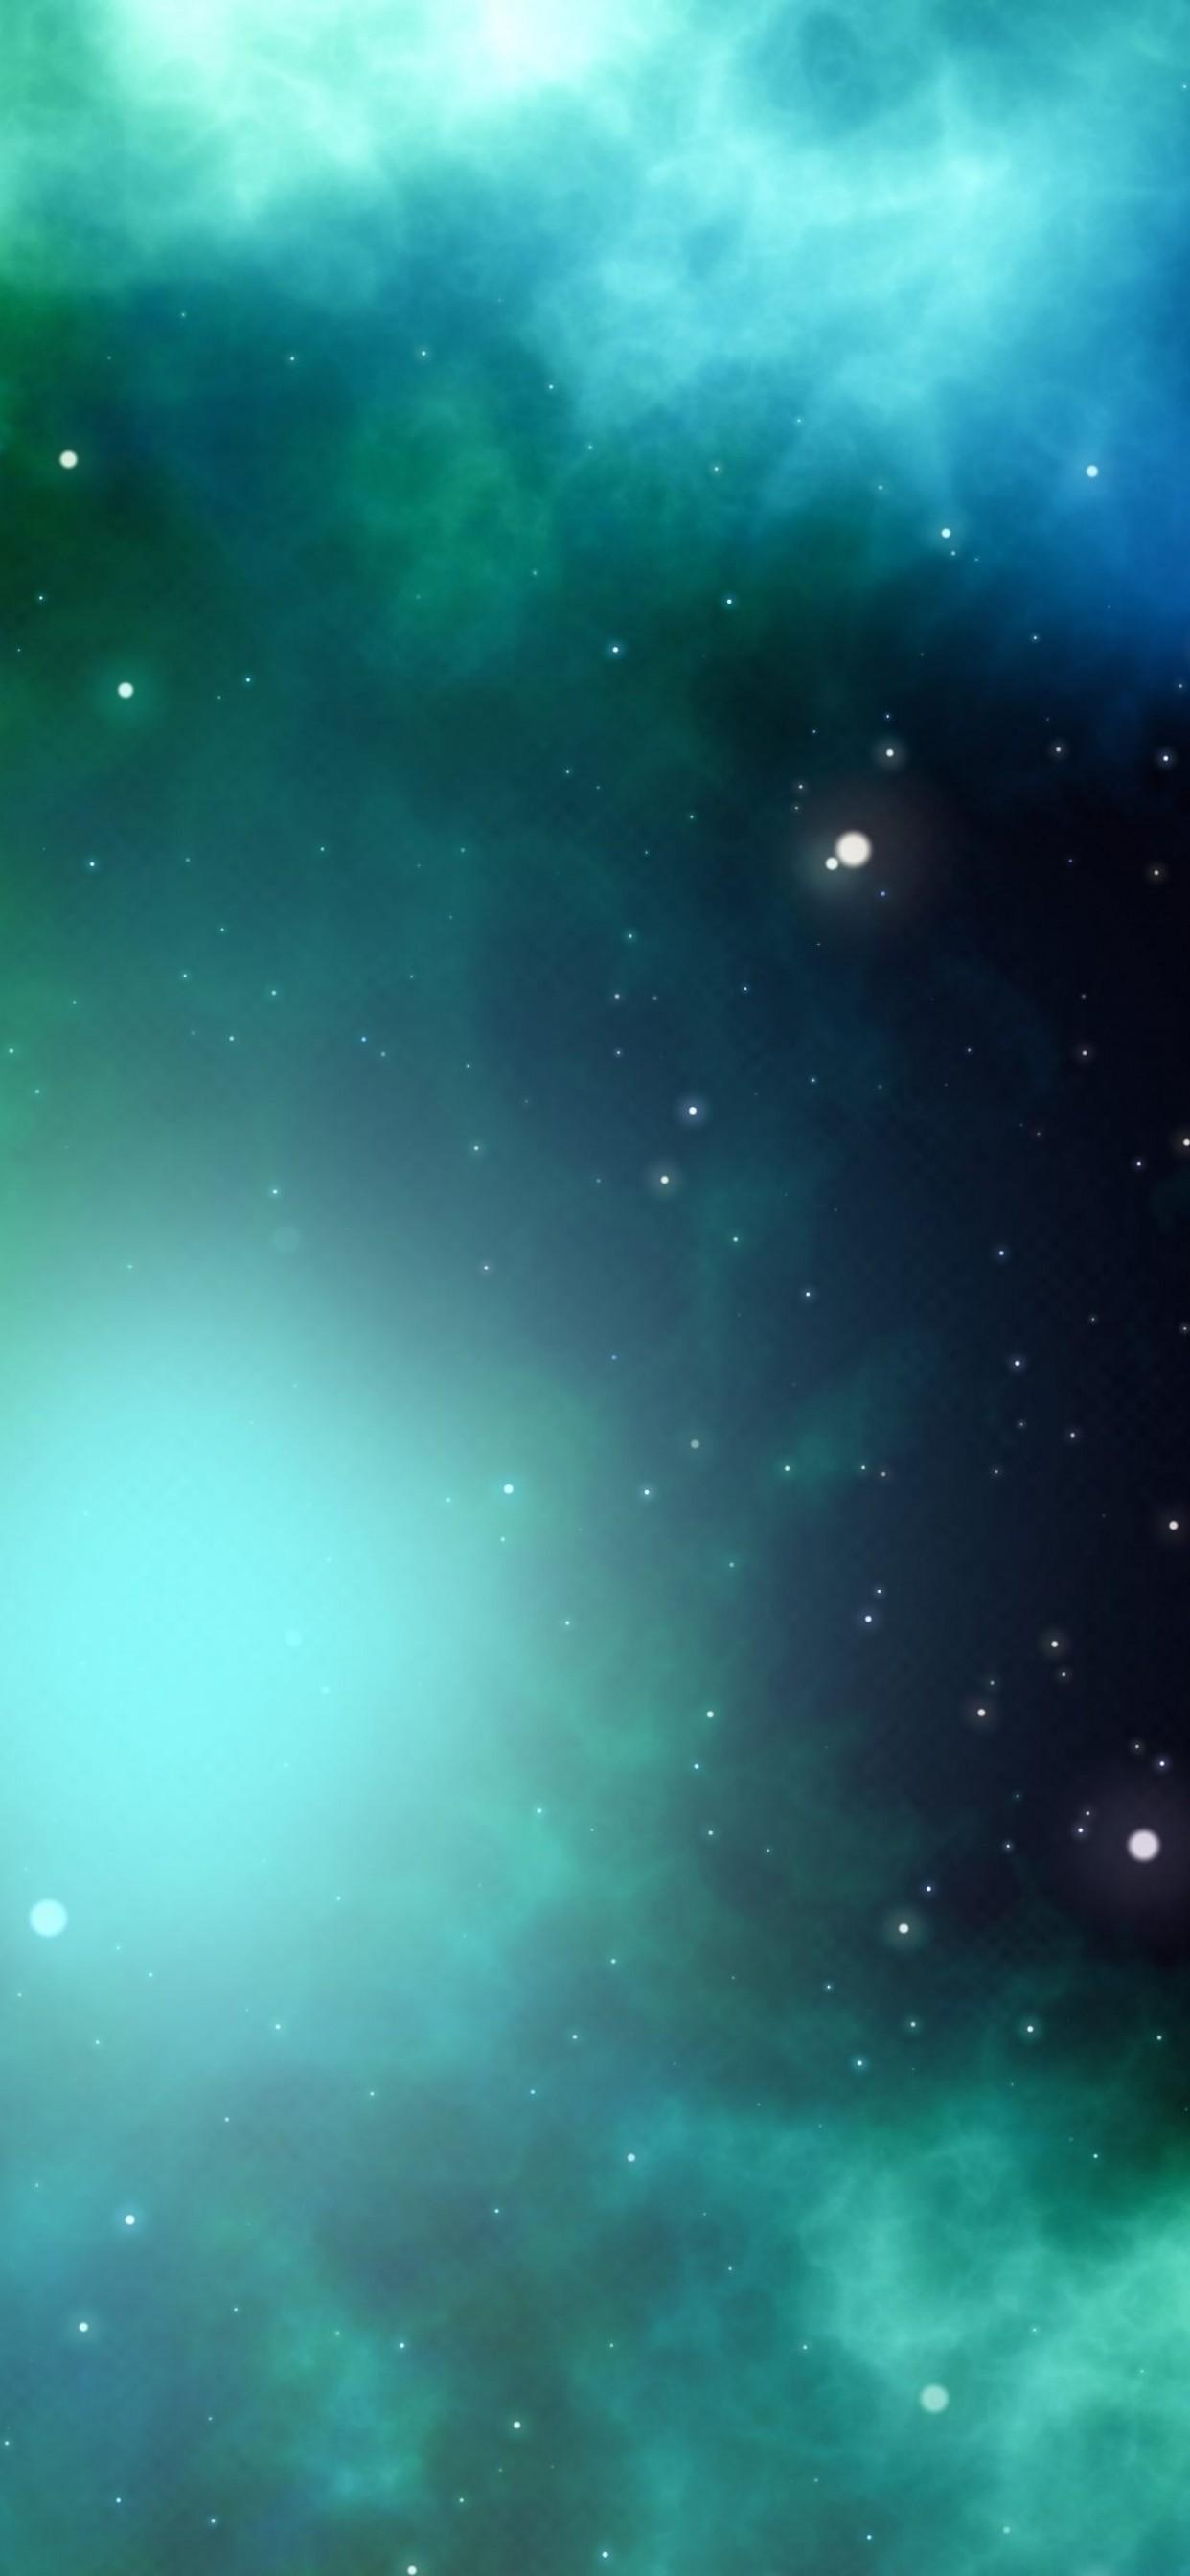 Download 1242x2688 Green Nebula, Stars, Cosmos, Galaxy Wallpapers